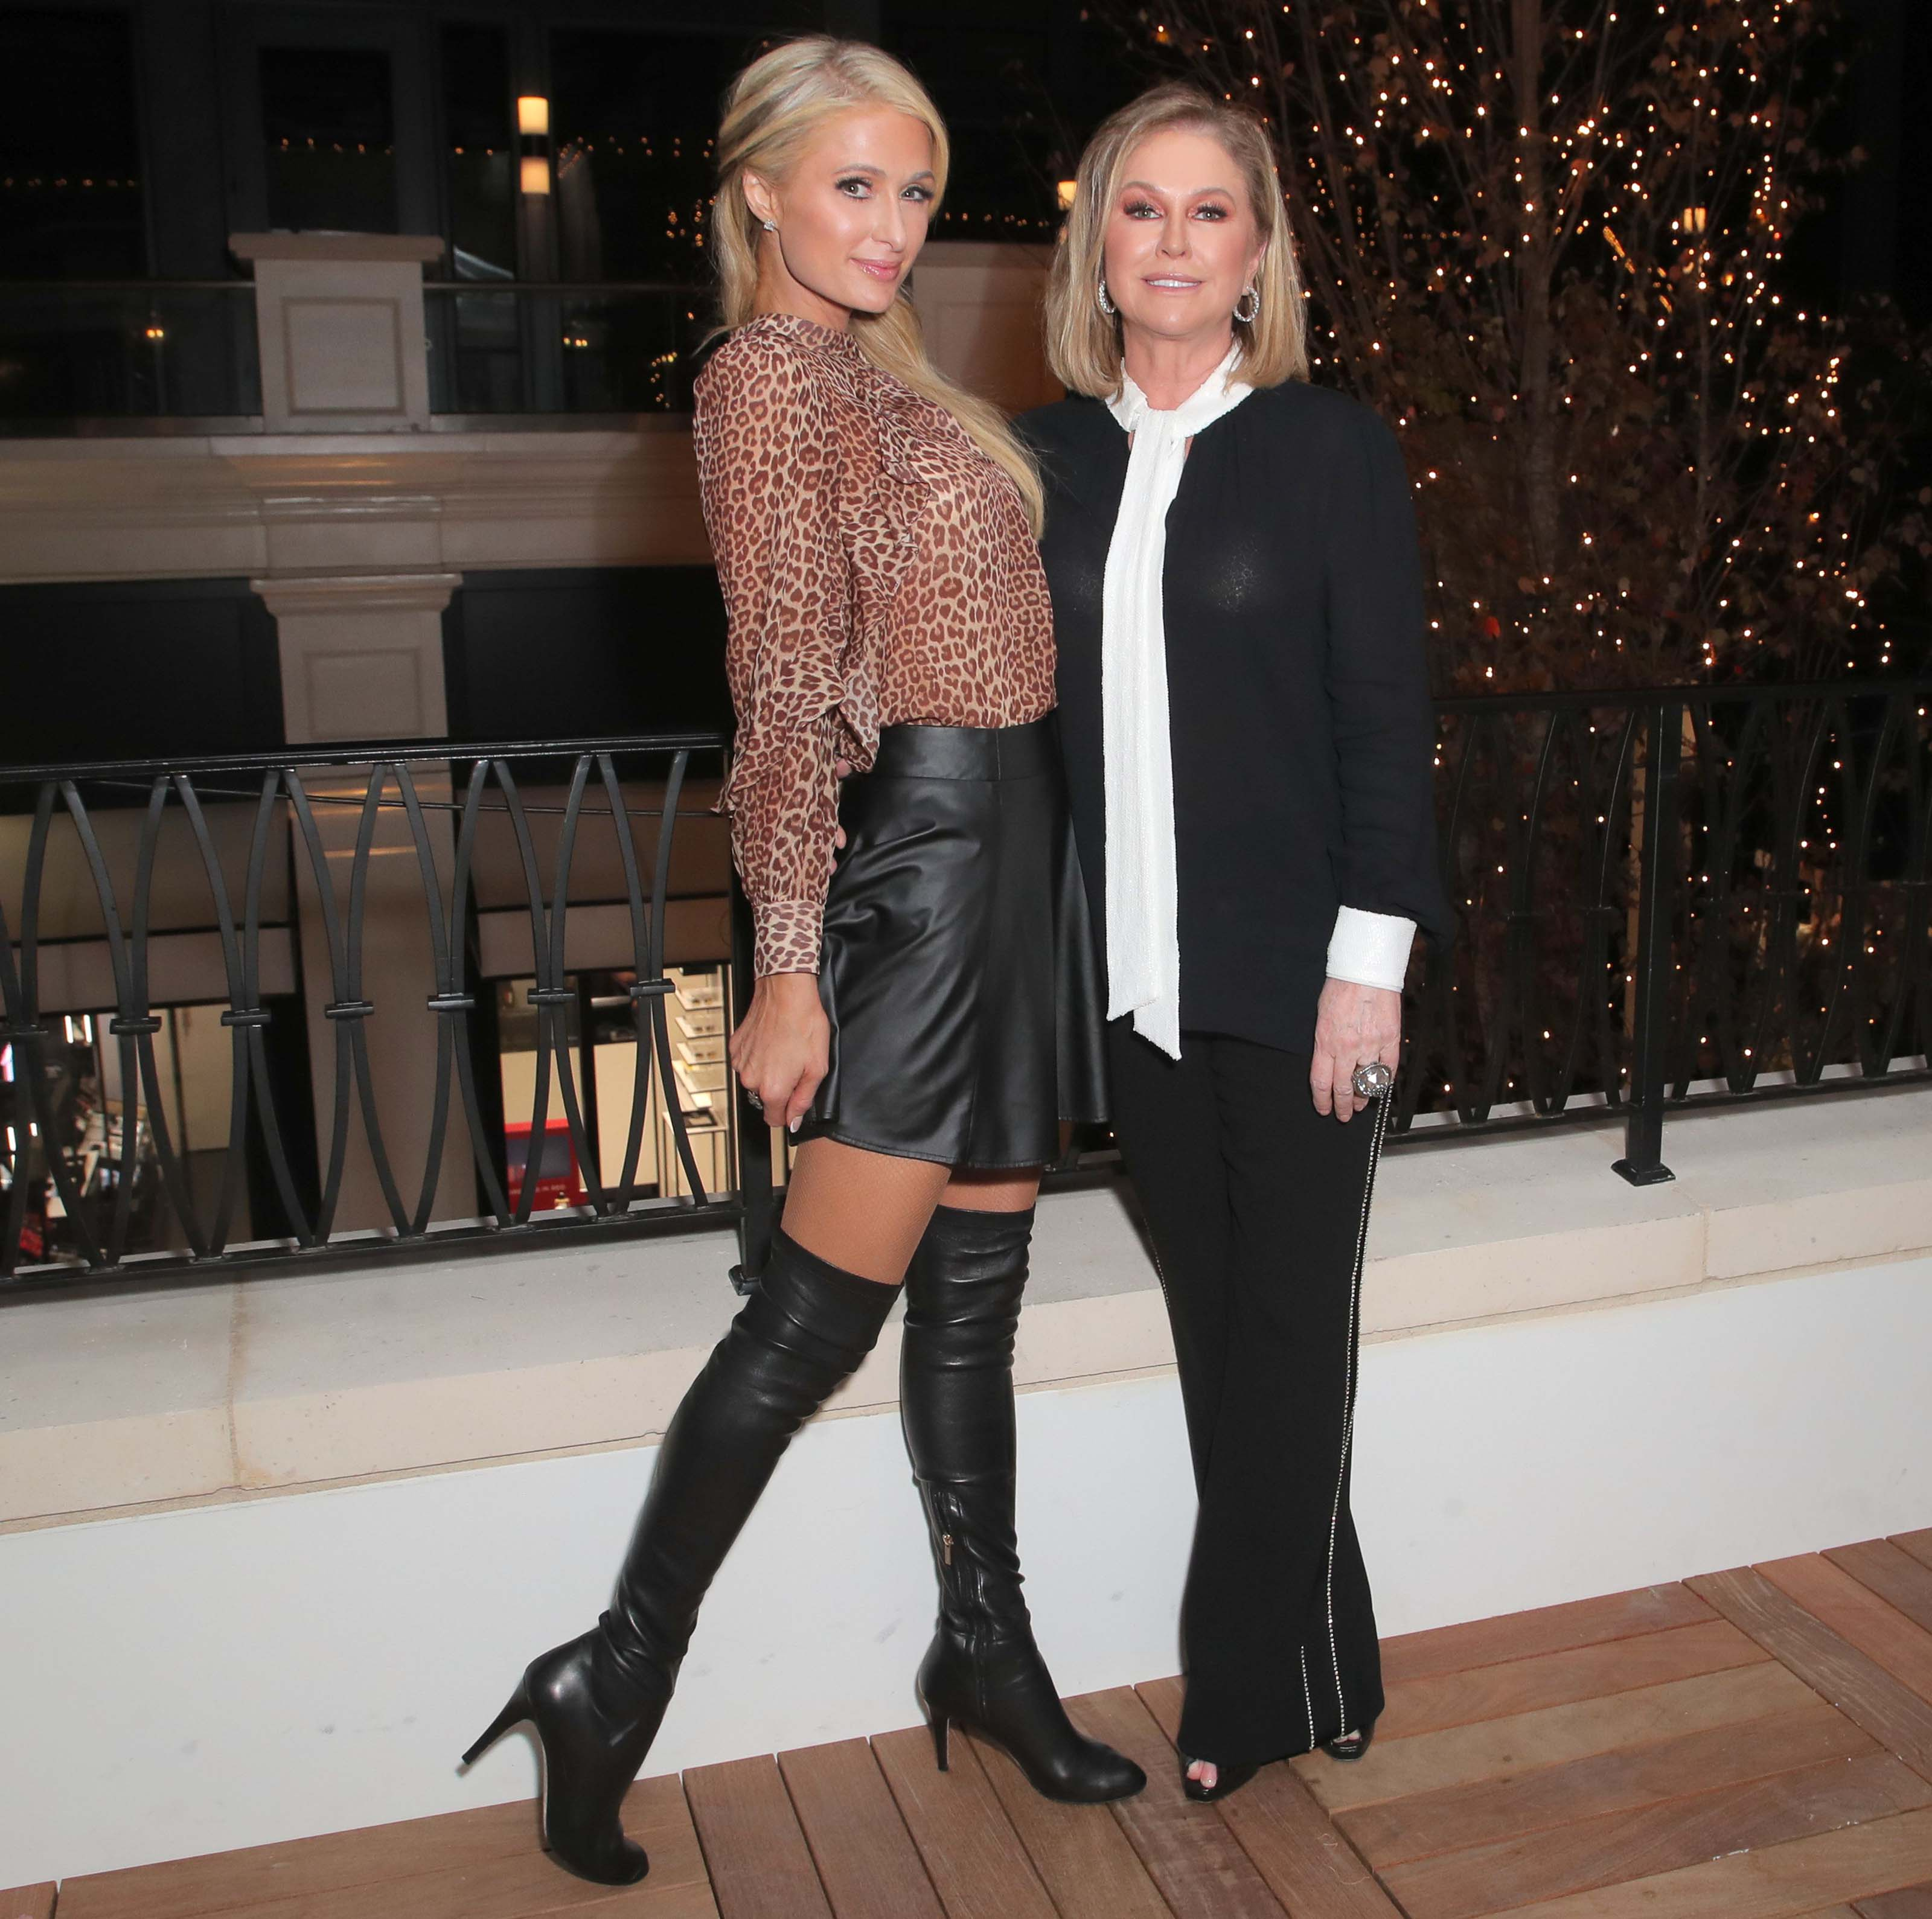 Paris Hilton attends Rachel Zoe Palisades Village Holiday Celebration